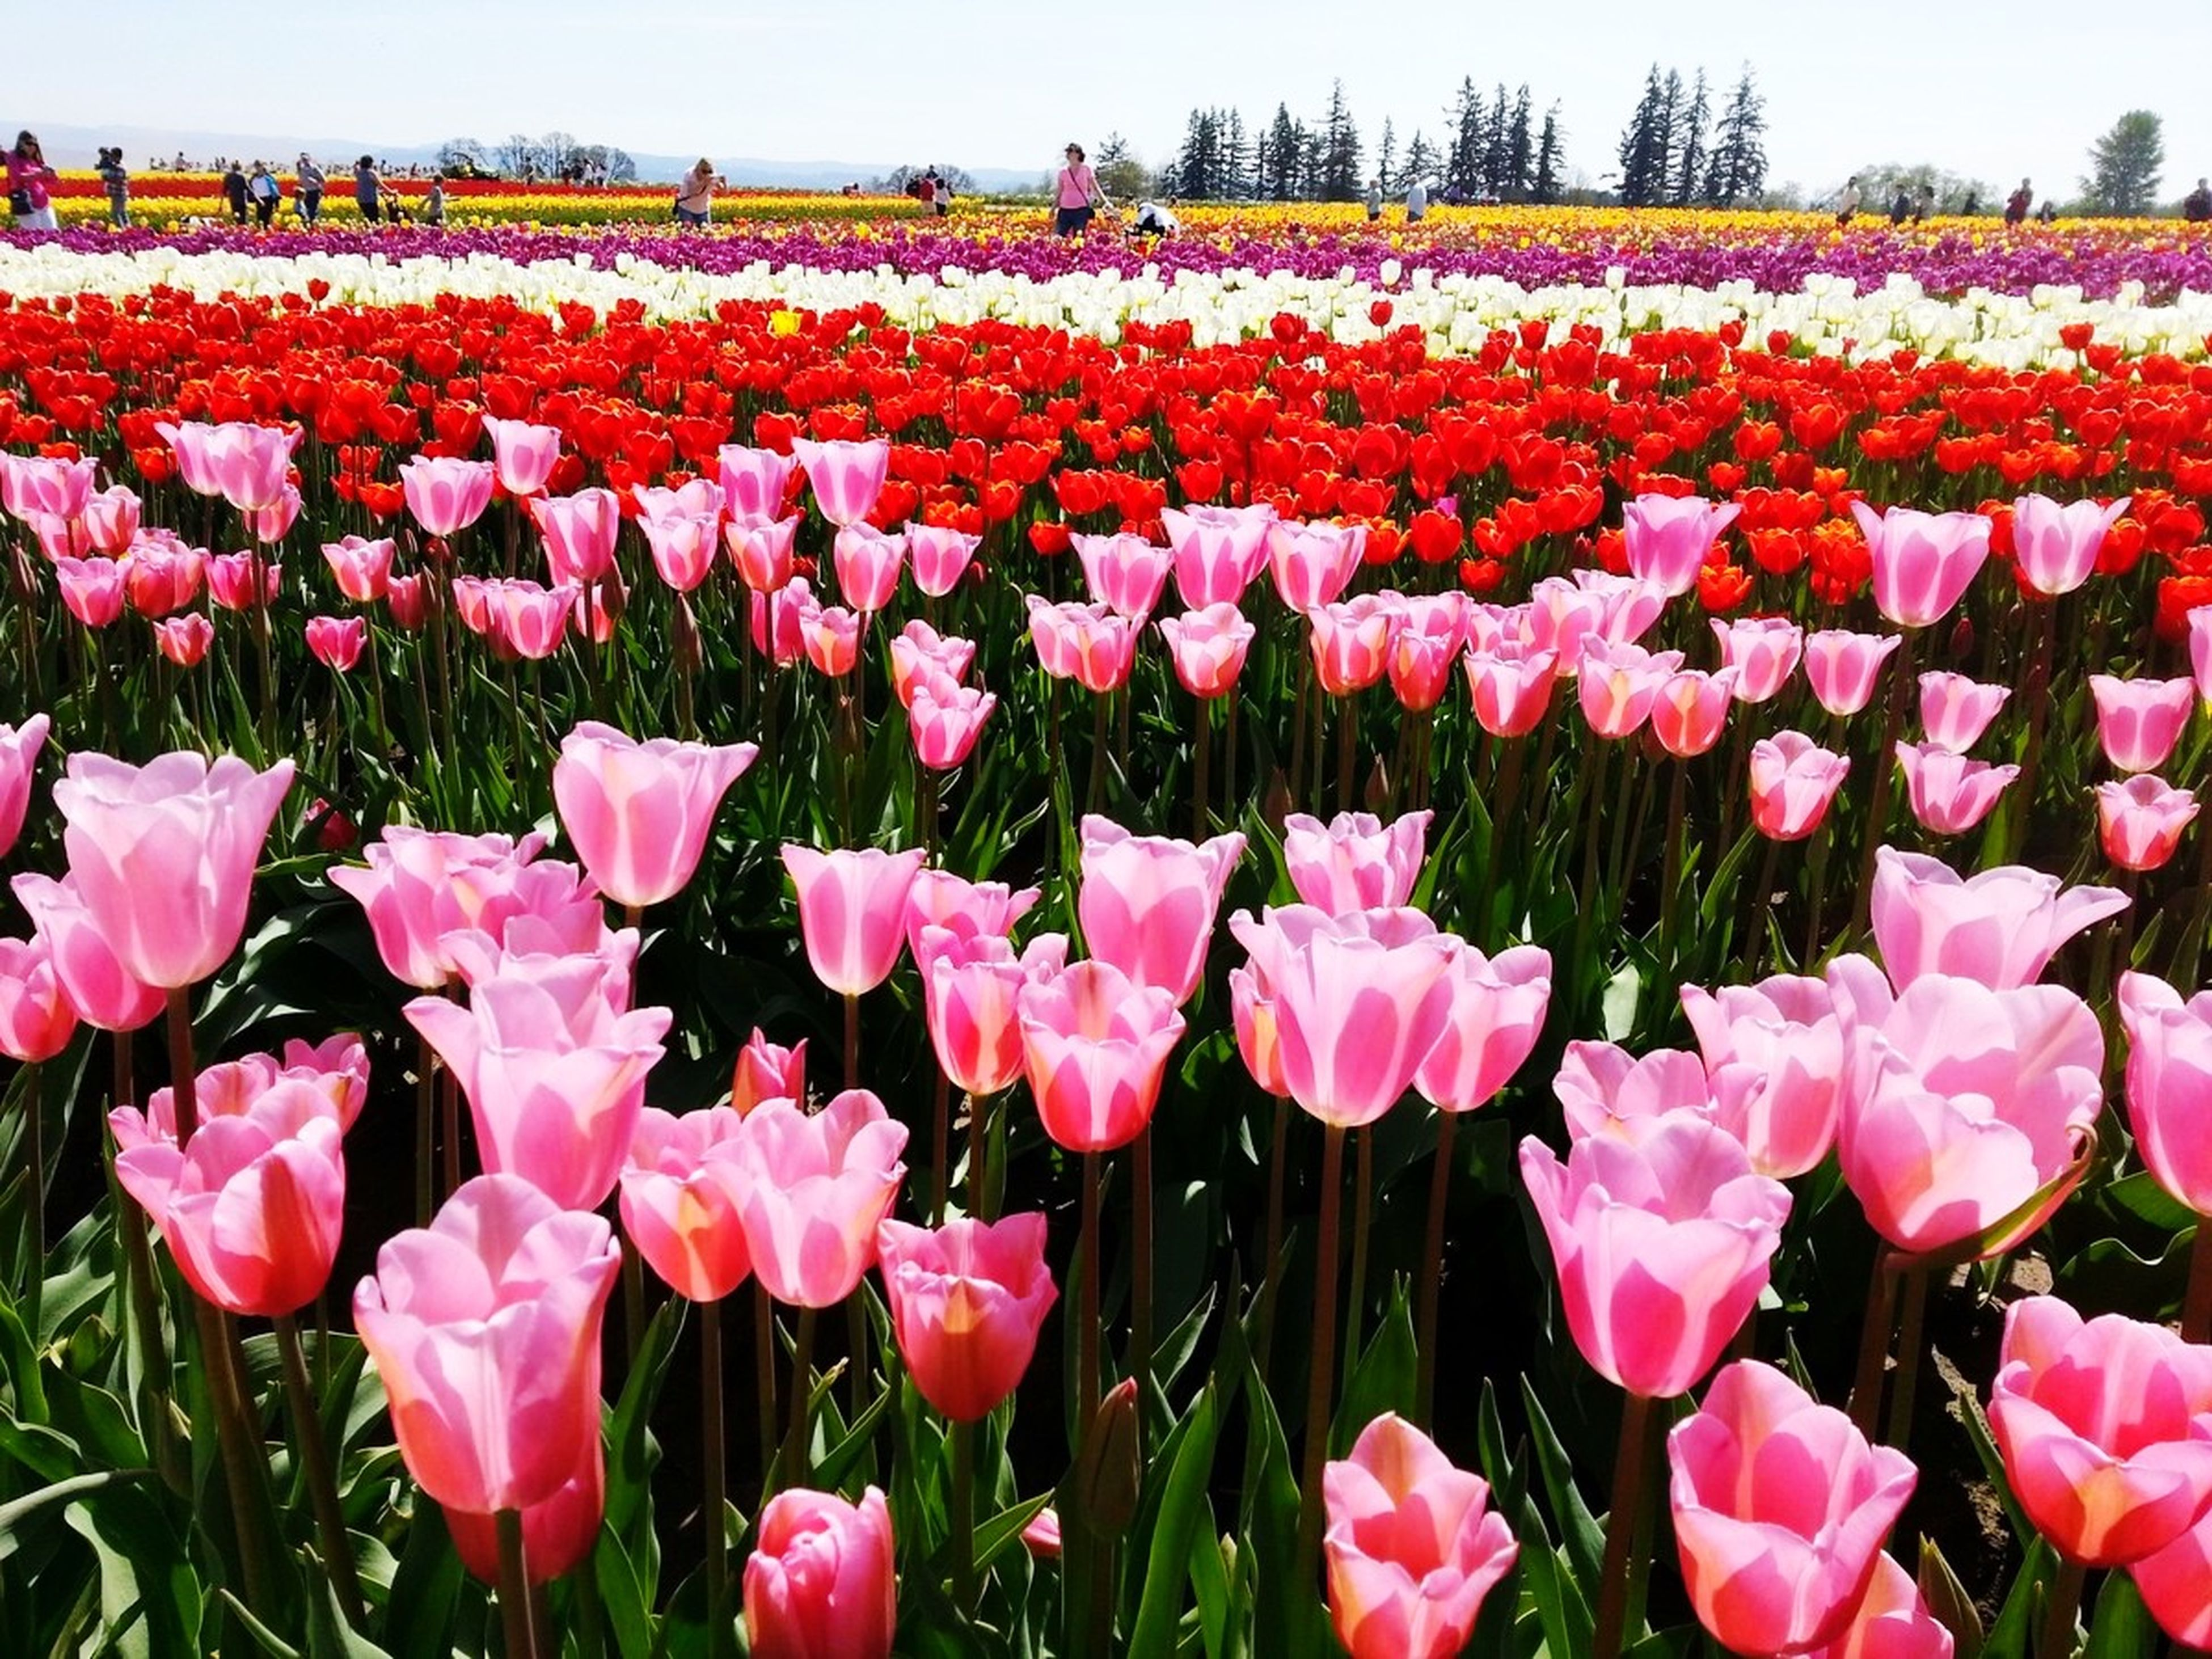 flower, freshness, abundance, tulip, beauty in nature, fragility, growth, field, flowerbed, nature, petal, blooming, red, plant, multi colored, flower head, pink color, landscape, blossom, in bloom